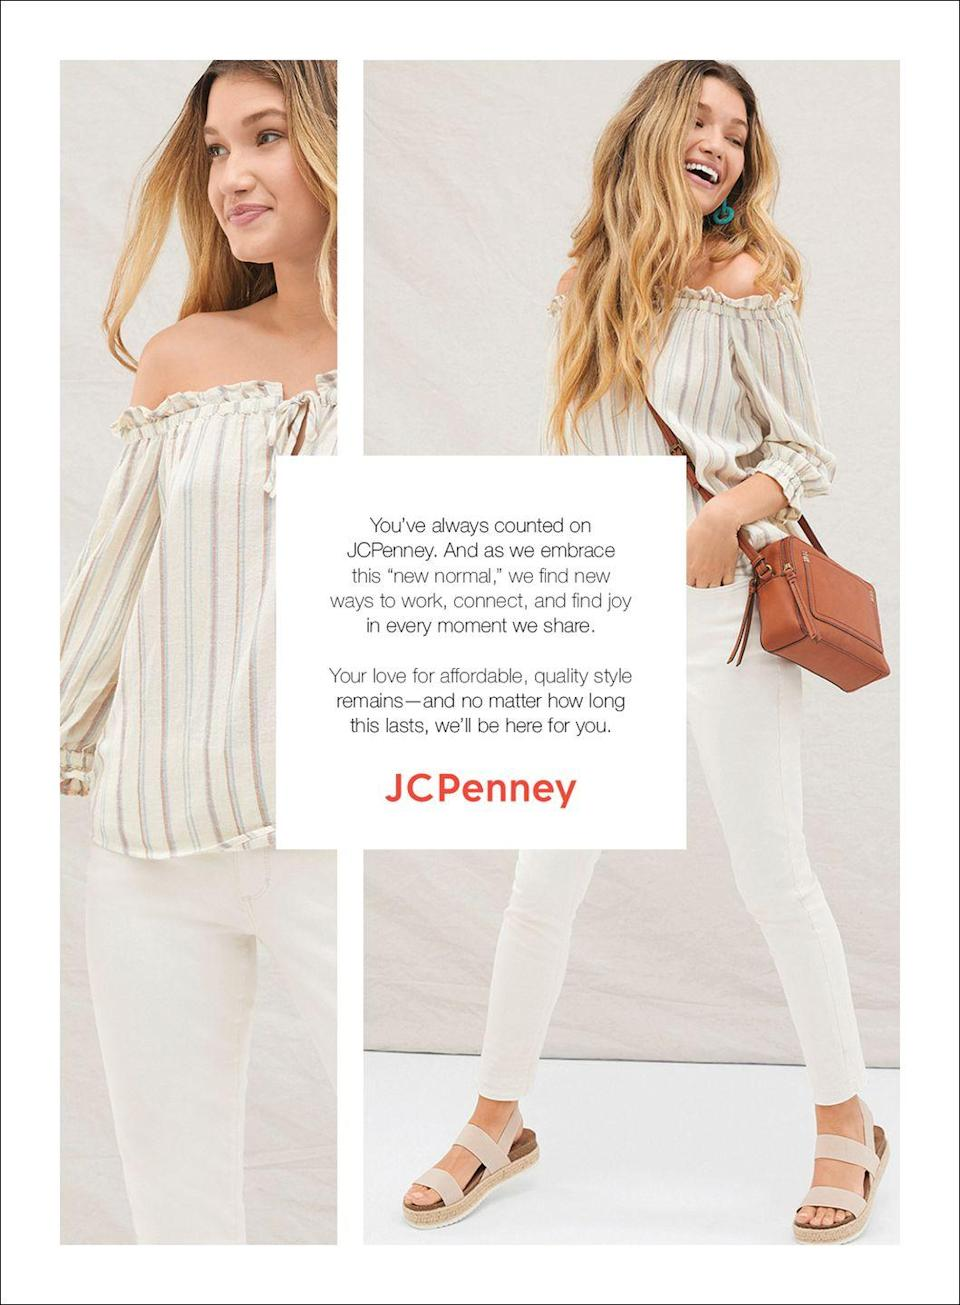 """<p>You've always counted on JCPenney. And as we embrace this """"new normal,"""" we find new ways to work, connect, and find joy in every moment we share. </p><p>Your love for affordable, quality style remains—and no matter how long this lasts, we'll be here for you.</p>"""